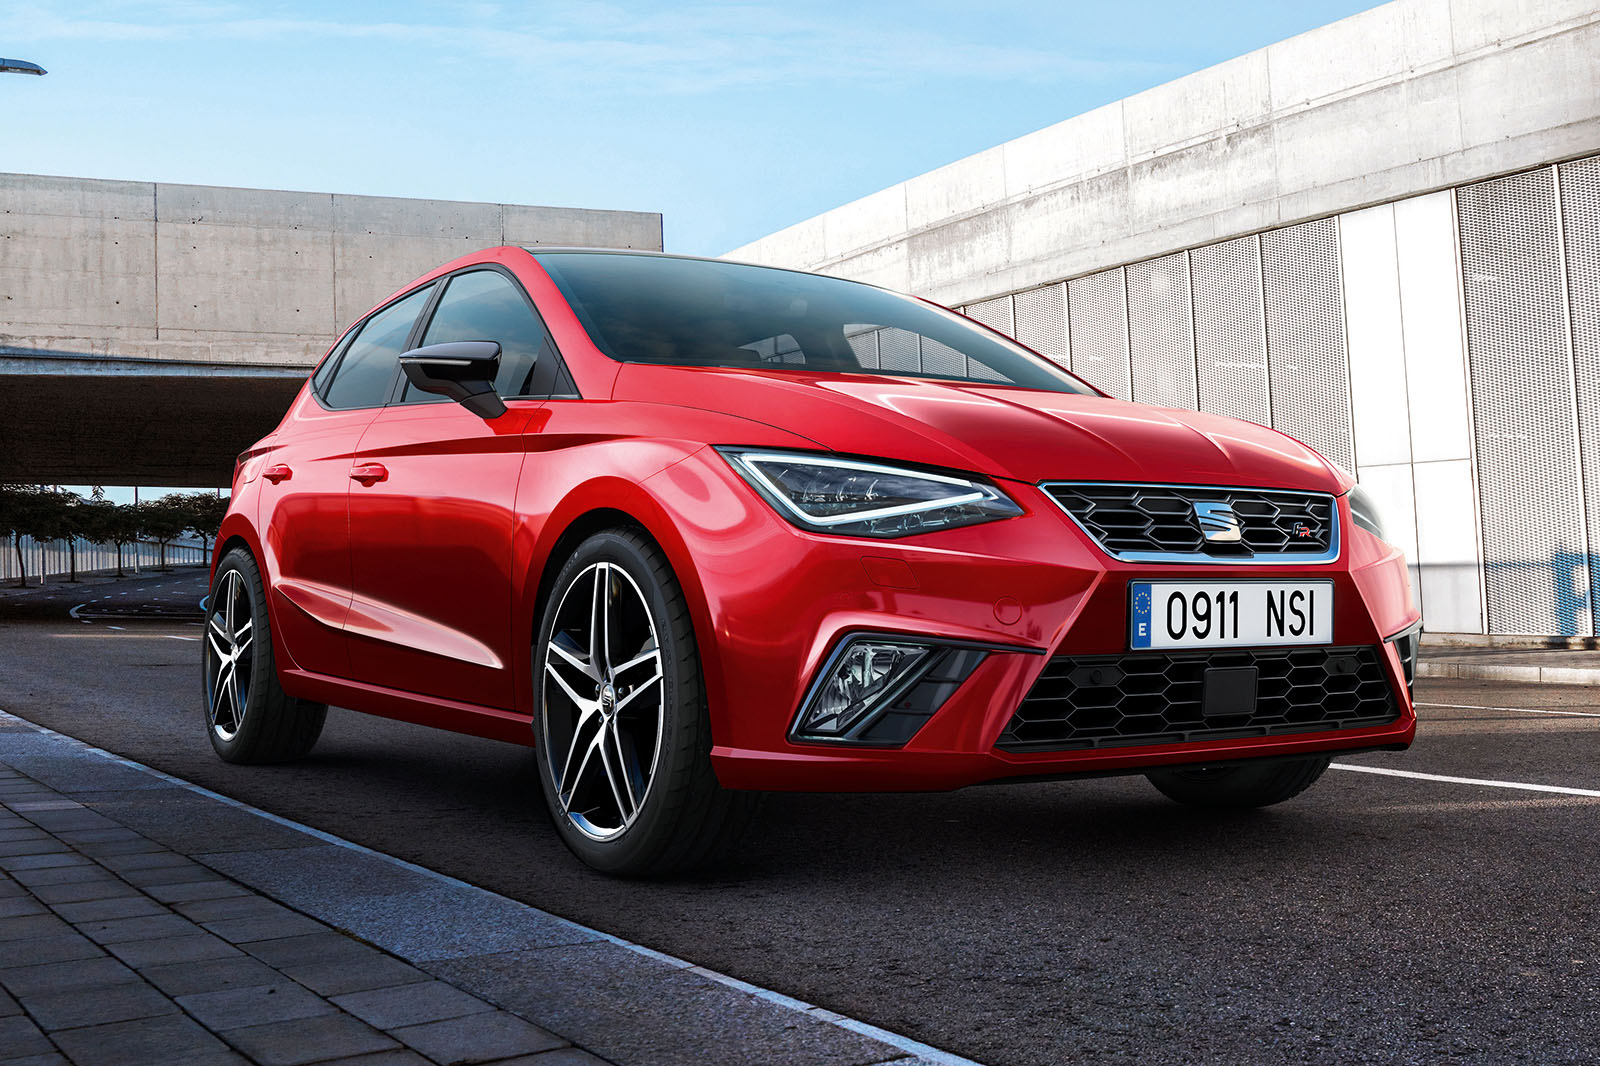 2017 seat ibiza supermini priced from 13 130 autocar. Black Bedroom Furniture Sets. Home Design Ideas